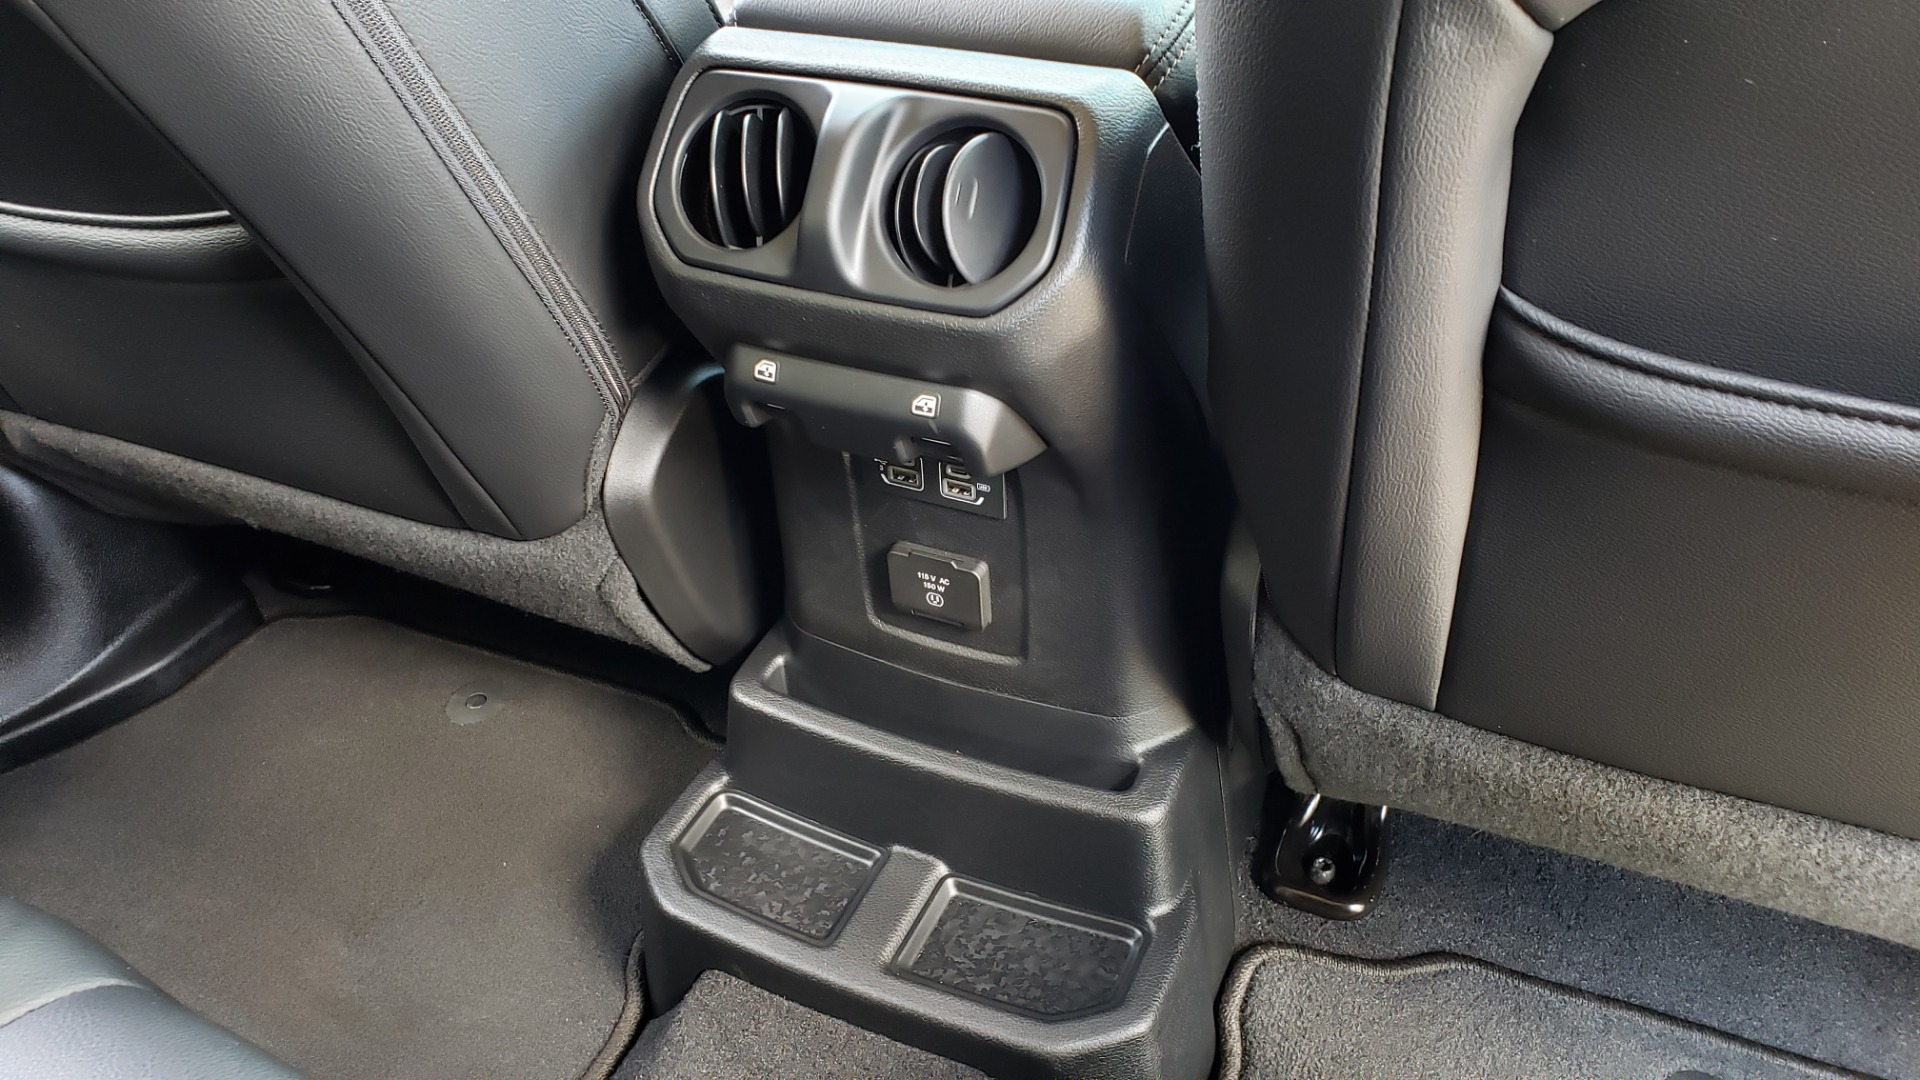 Used 2018 Jeep WRANGLER UNLIMITED SAHARA / 3.6L V6 / 6-SPD MAN / ALPINE / NAV / HTD STS / REARVIEW for sale $43,999 at Formula Imports in Charlotte NC 28227 95